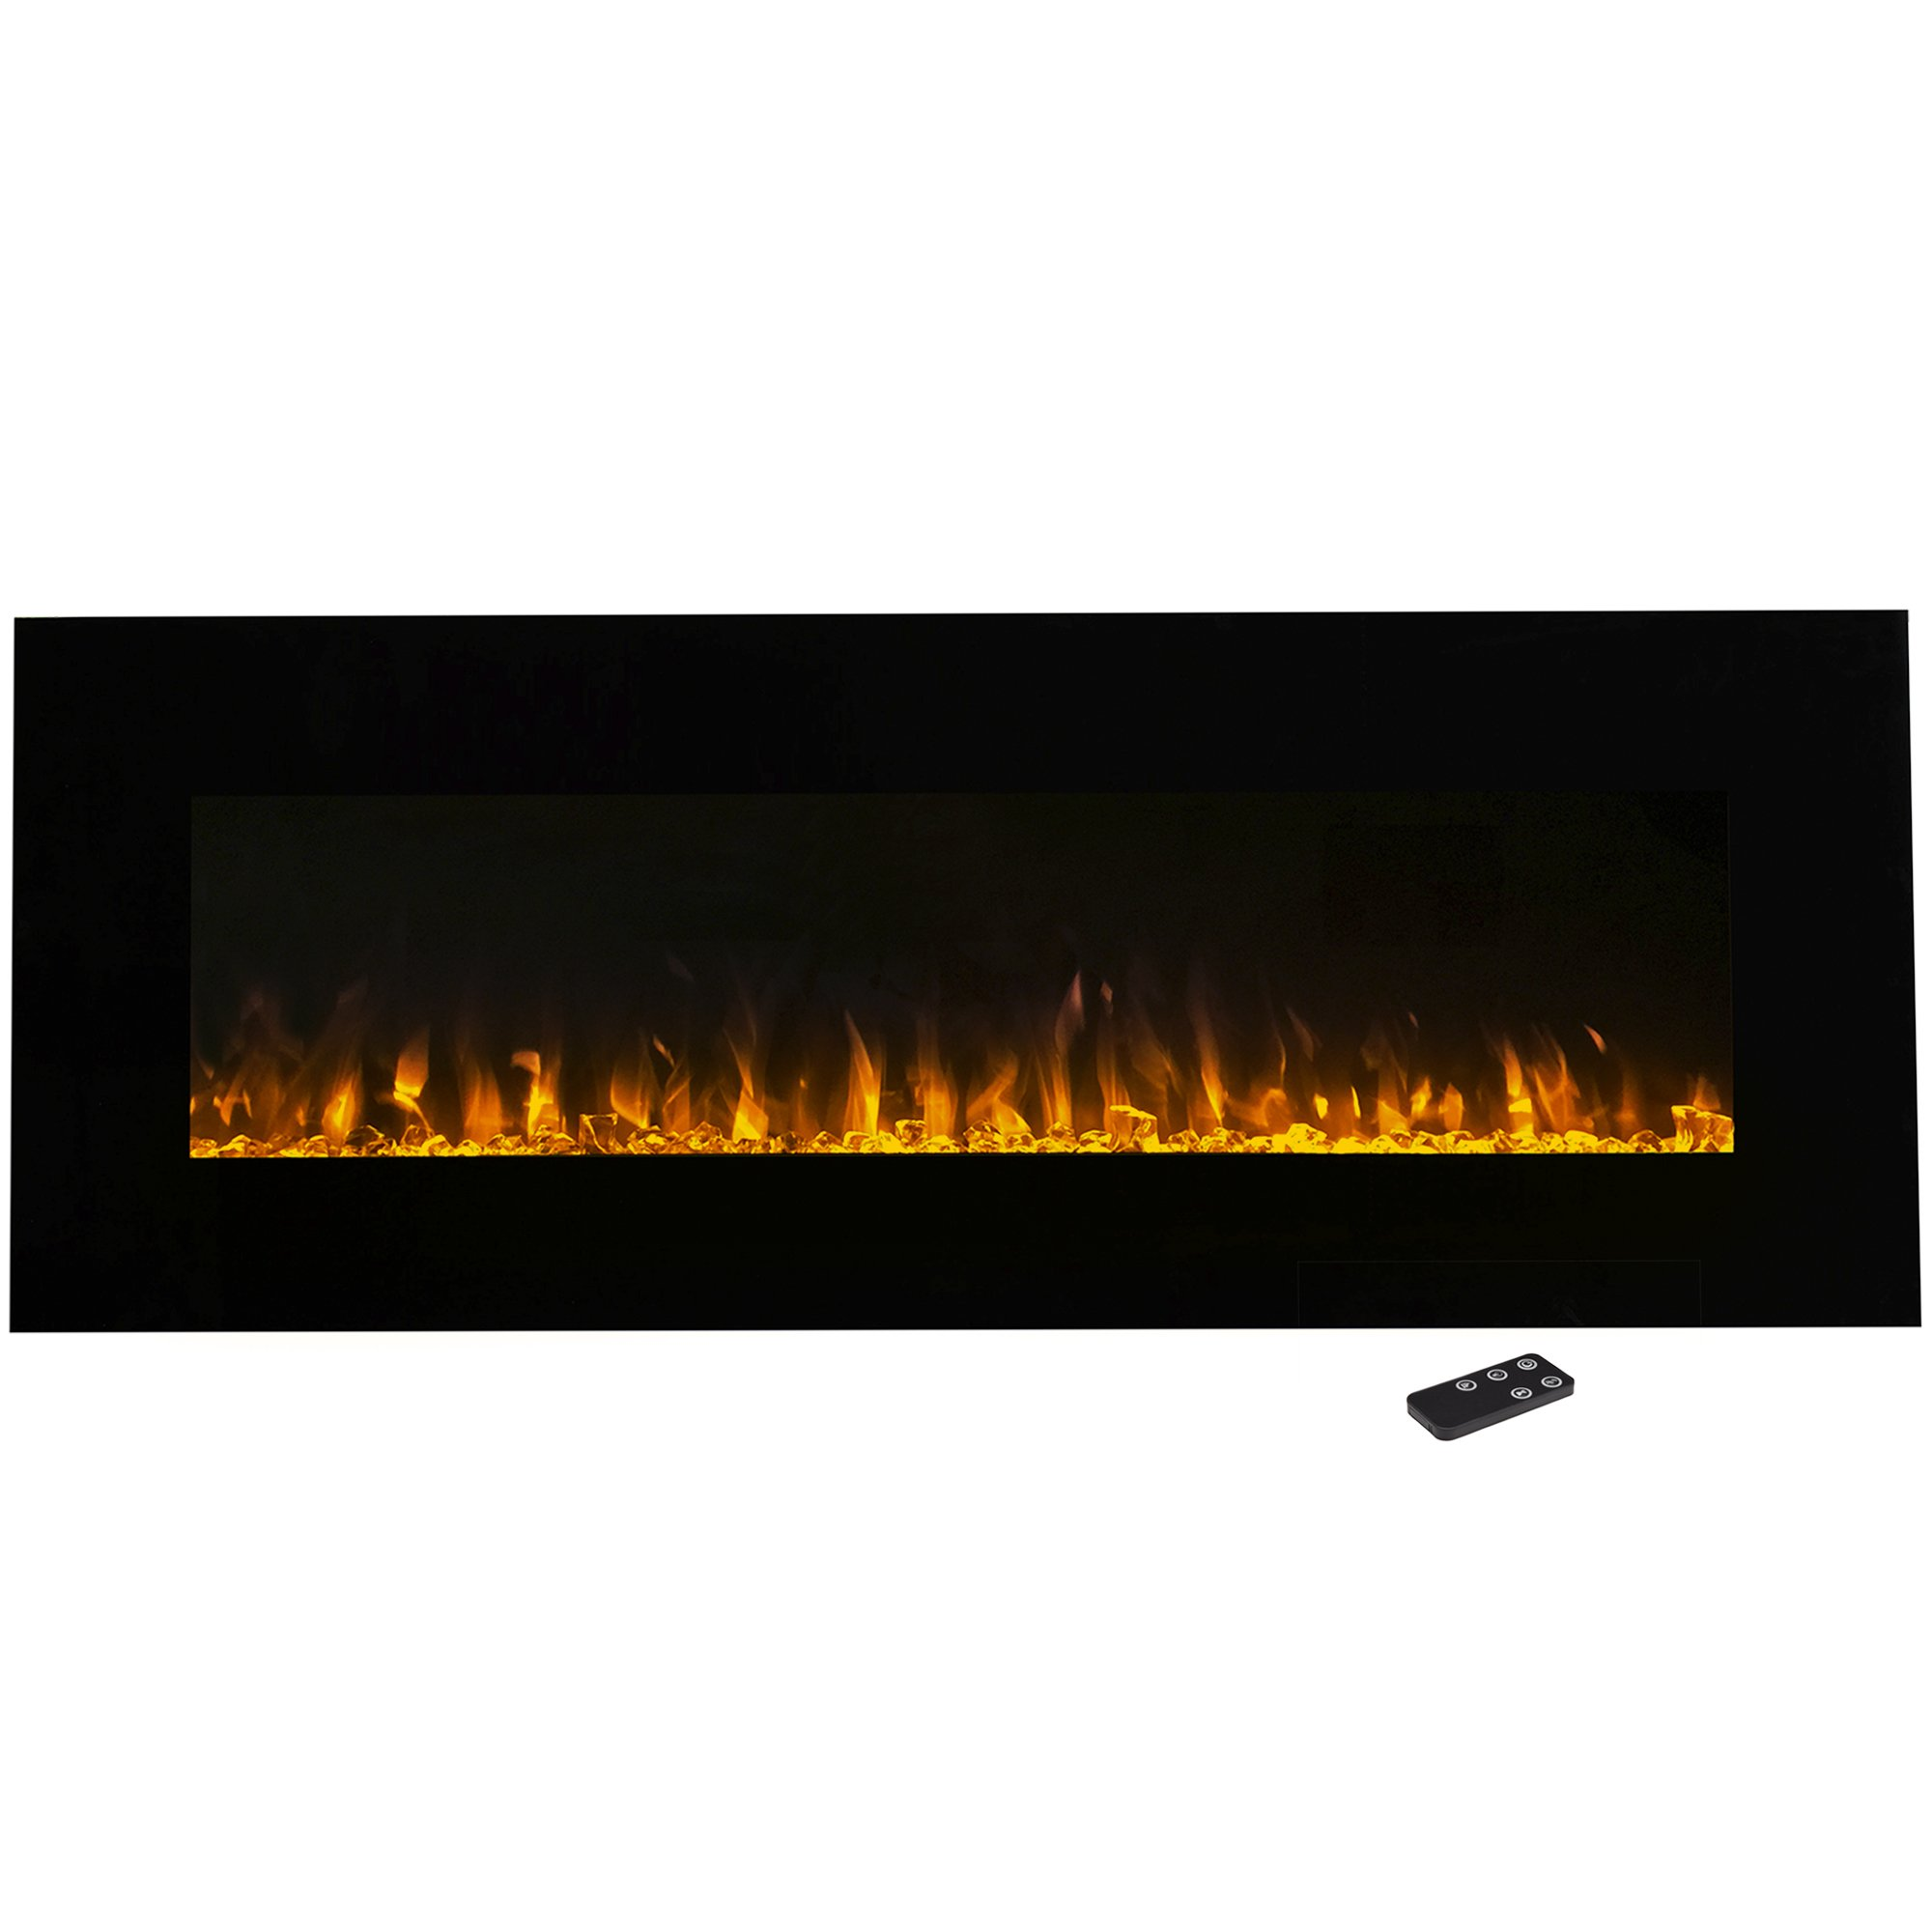 Electric Fireplace Wall Mounted, LED Fire and Ice Flame, With Remote 54 inch by Northwest